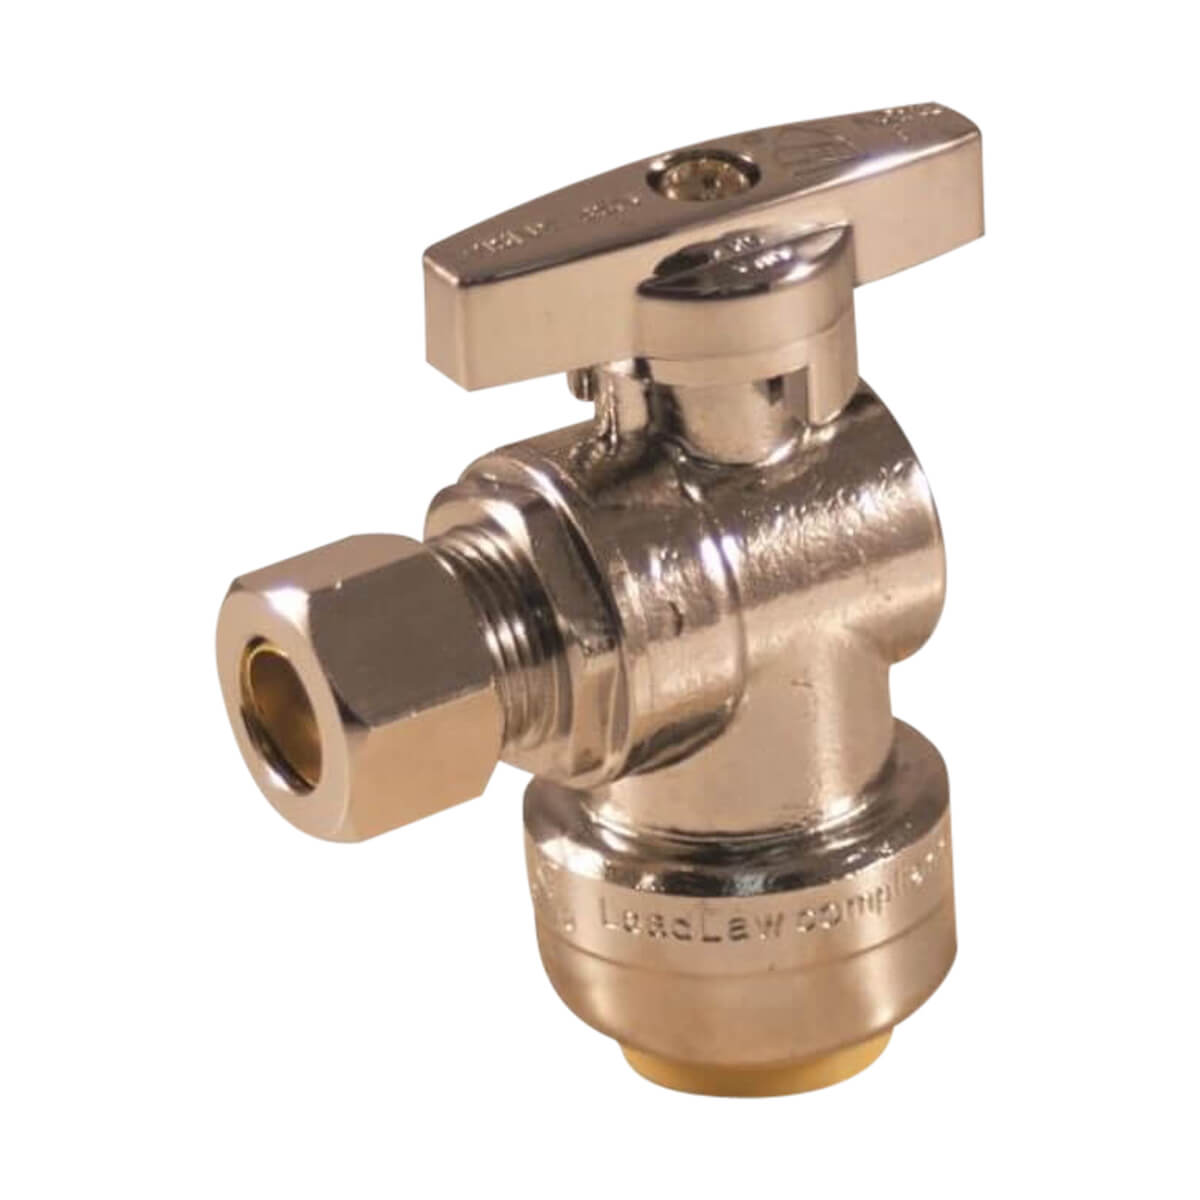 1/2-in Push-Fit X 3/8-in Compression Angle Valve